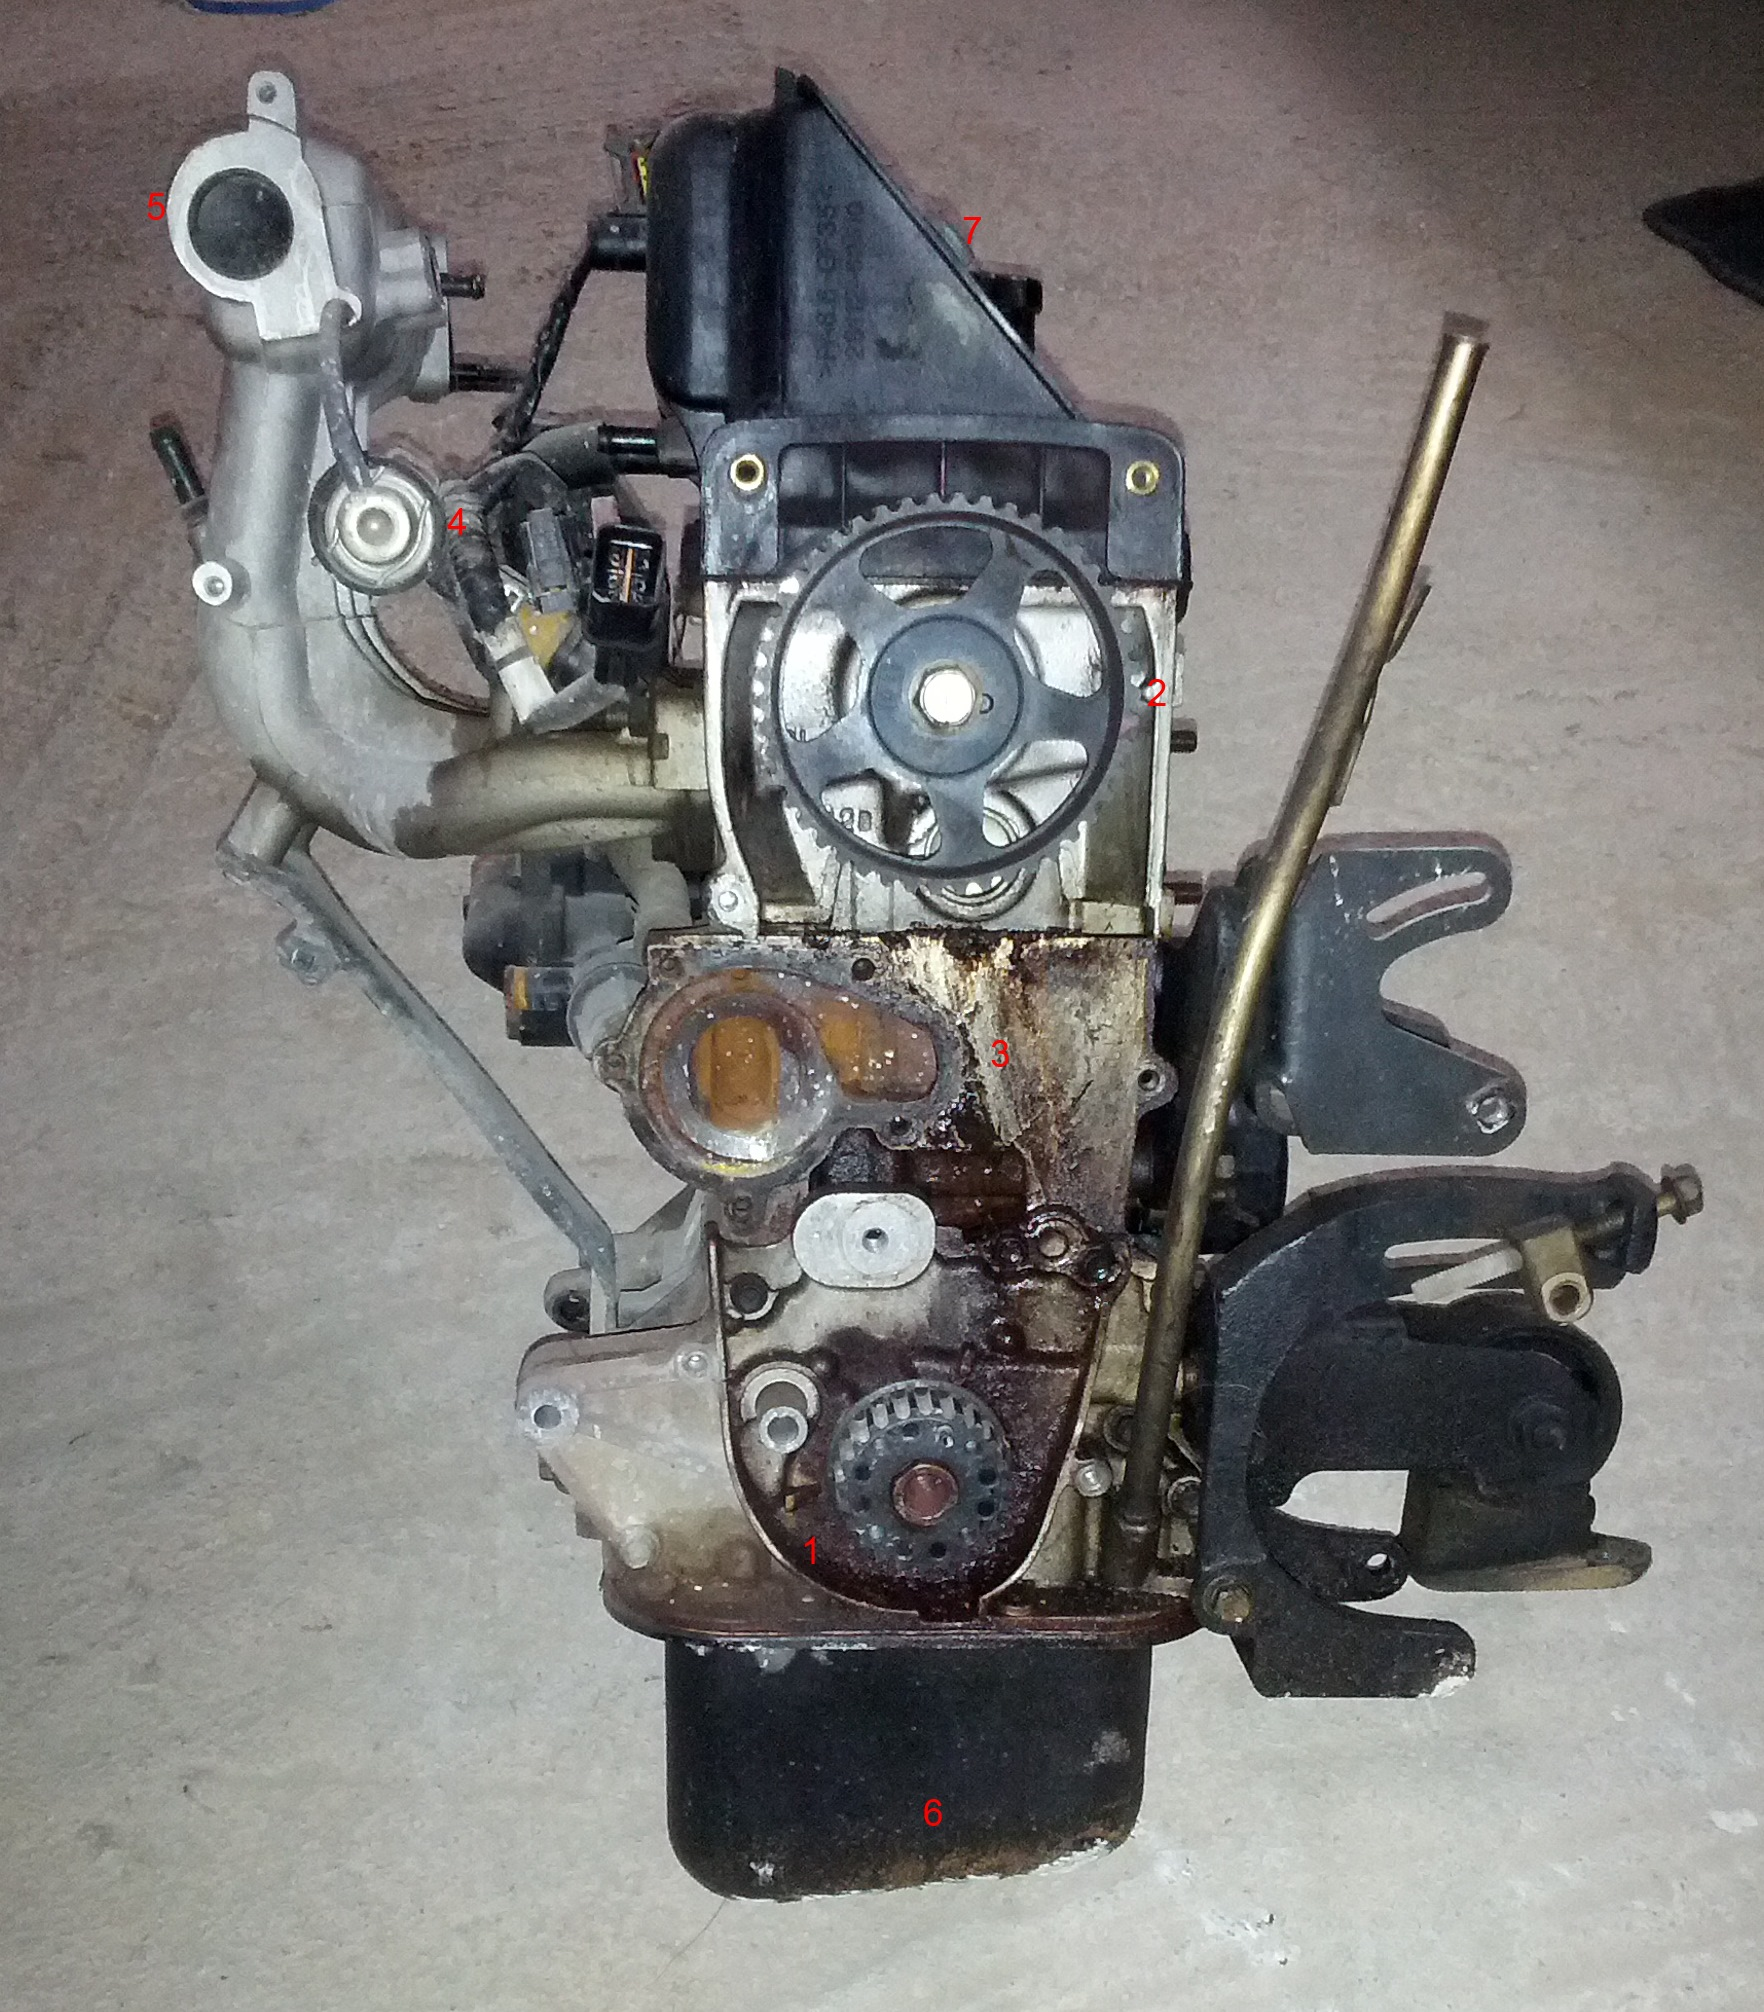 hyundai atos engine teardown part 1 fubar gr rh fubar gr hyundai atos engine number location hyundai atos check engine